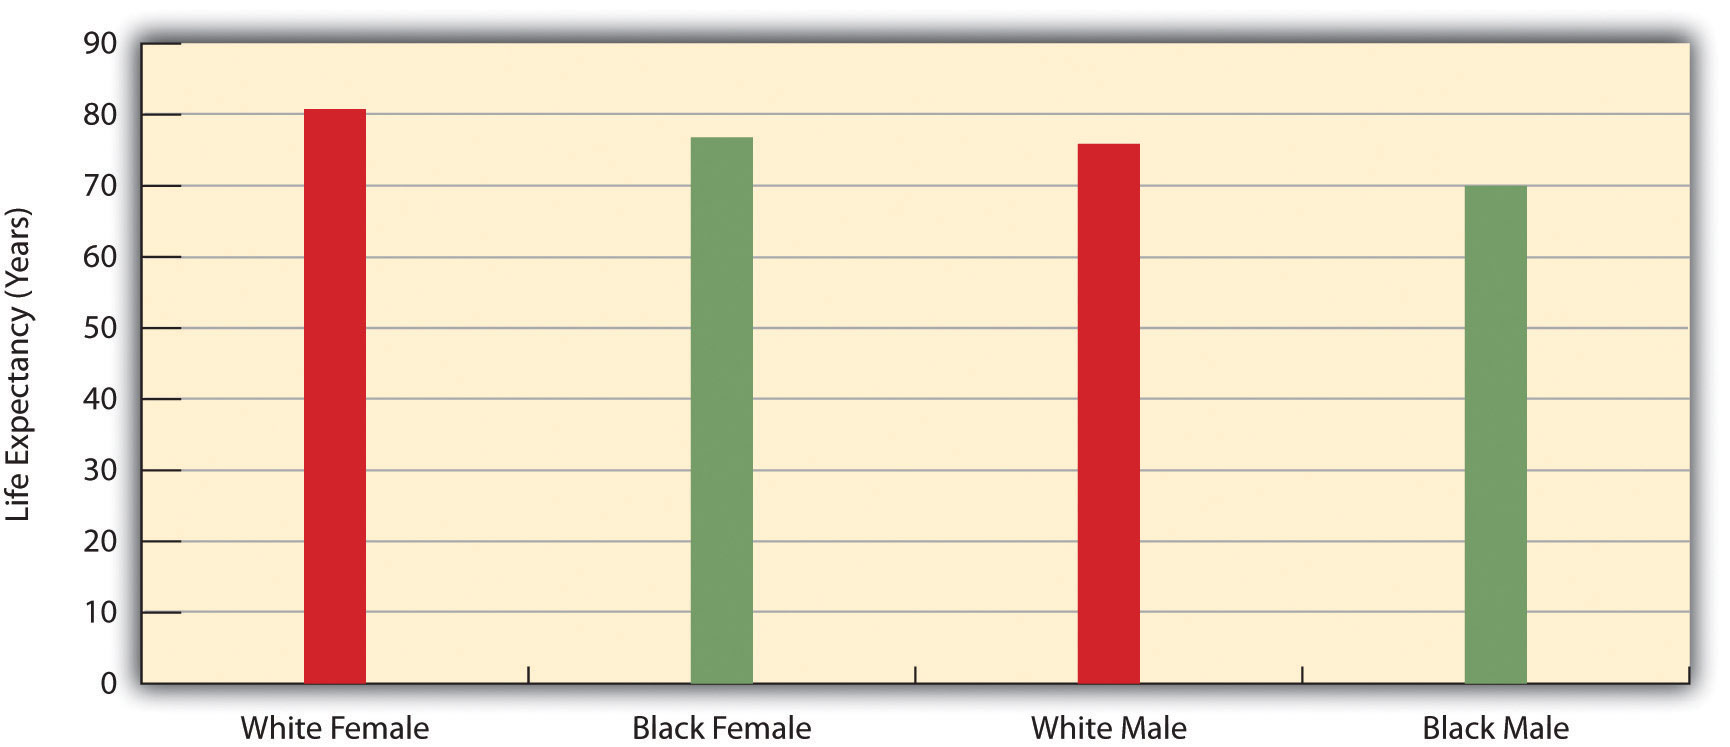 Sex, Race, and Life Expectancy for US Residents Born in 2007. This shows that white and black females have higher life expectancies than white and black males.